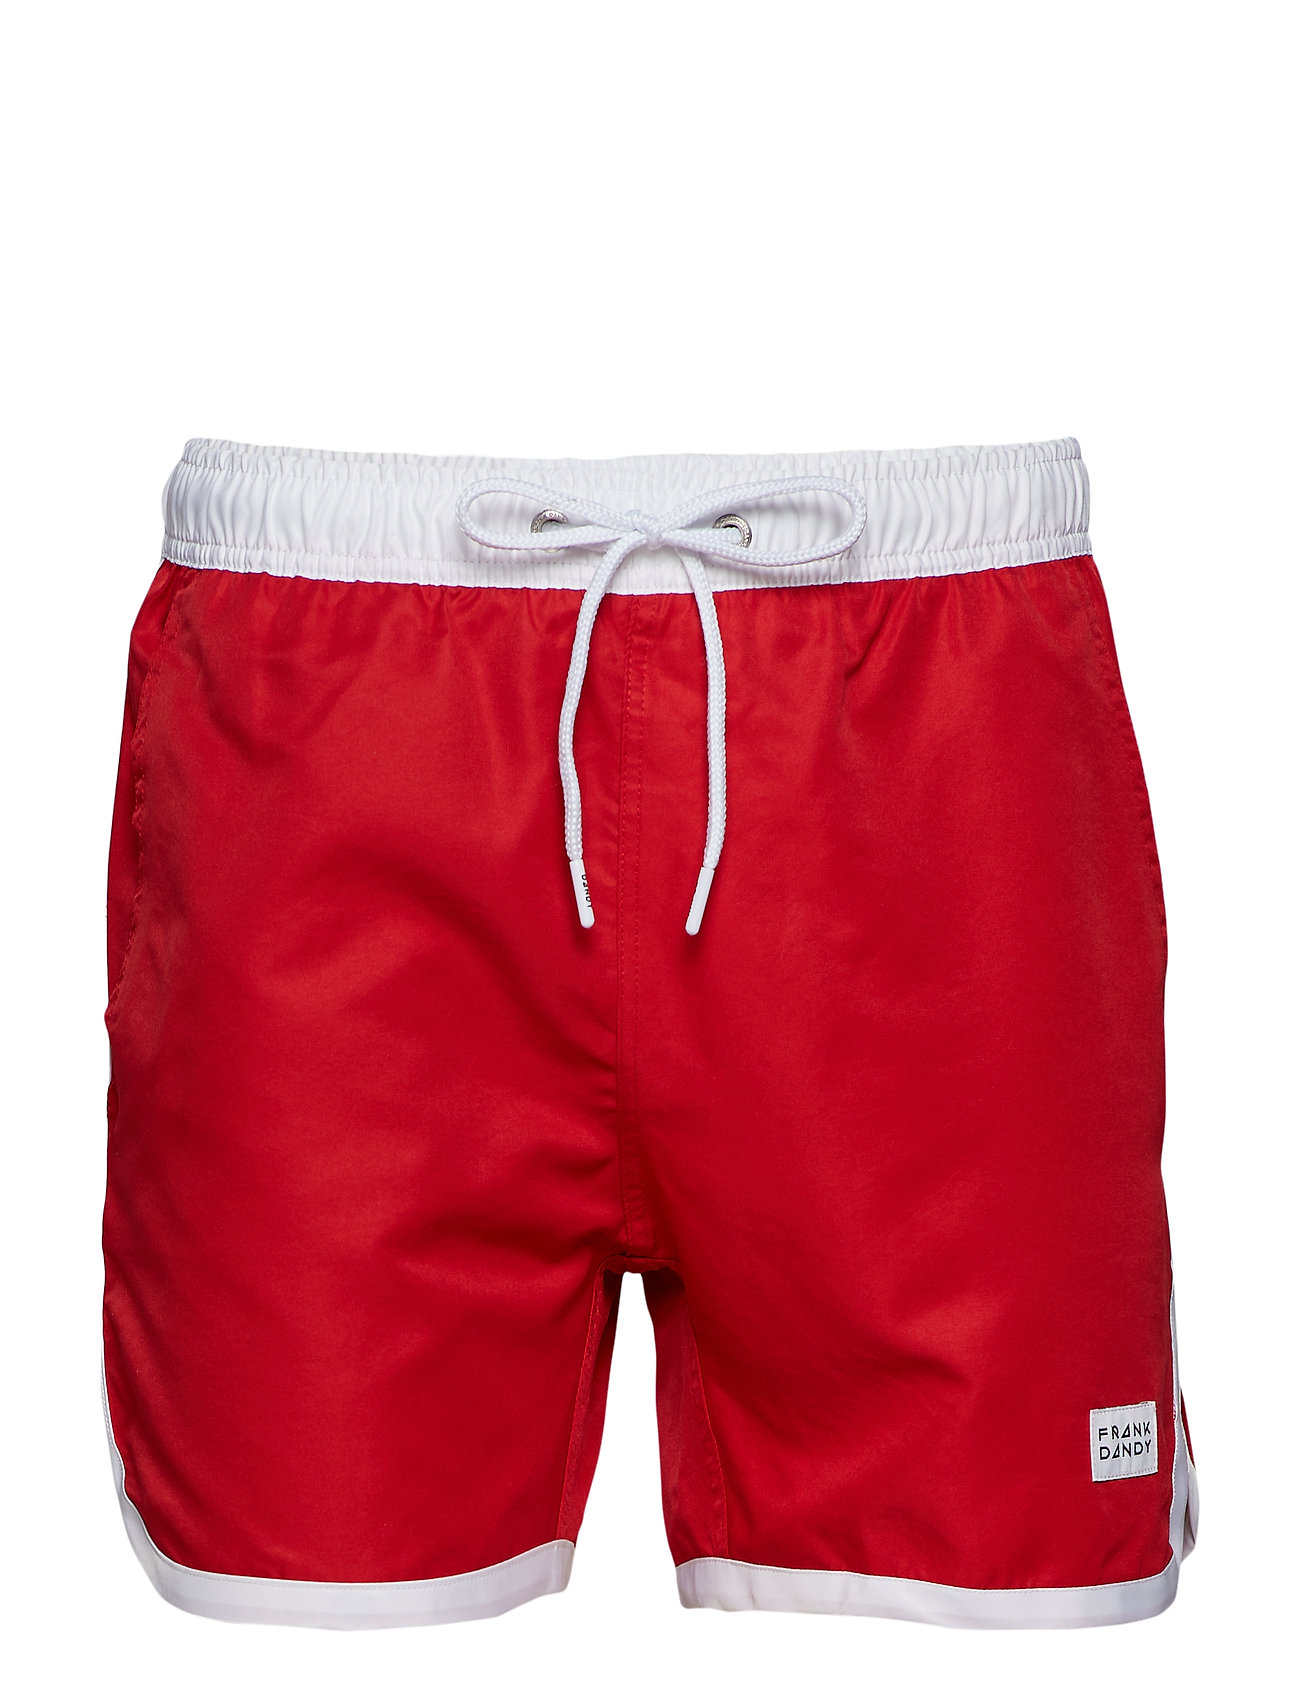 Frank Dandy St Paul Long Bermuda Shorts - RED